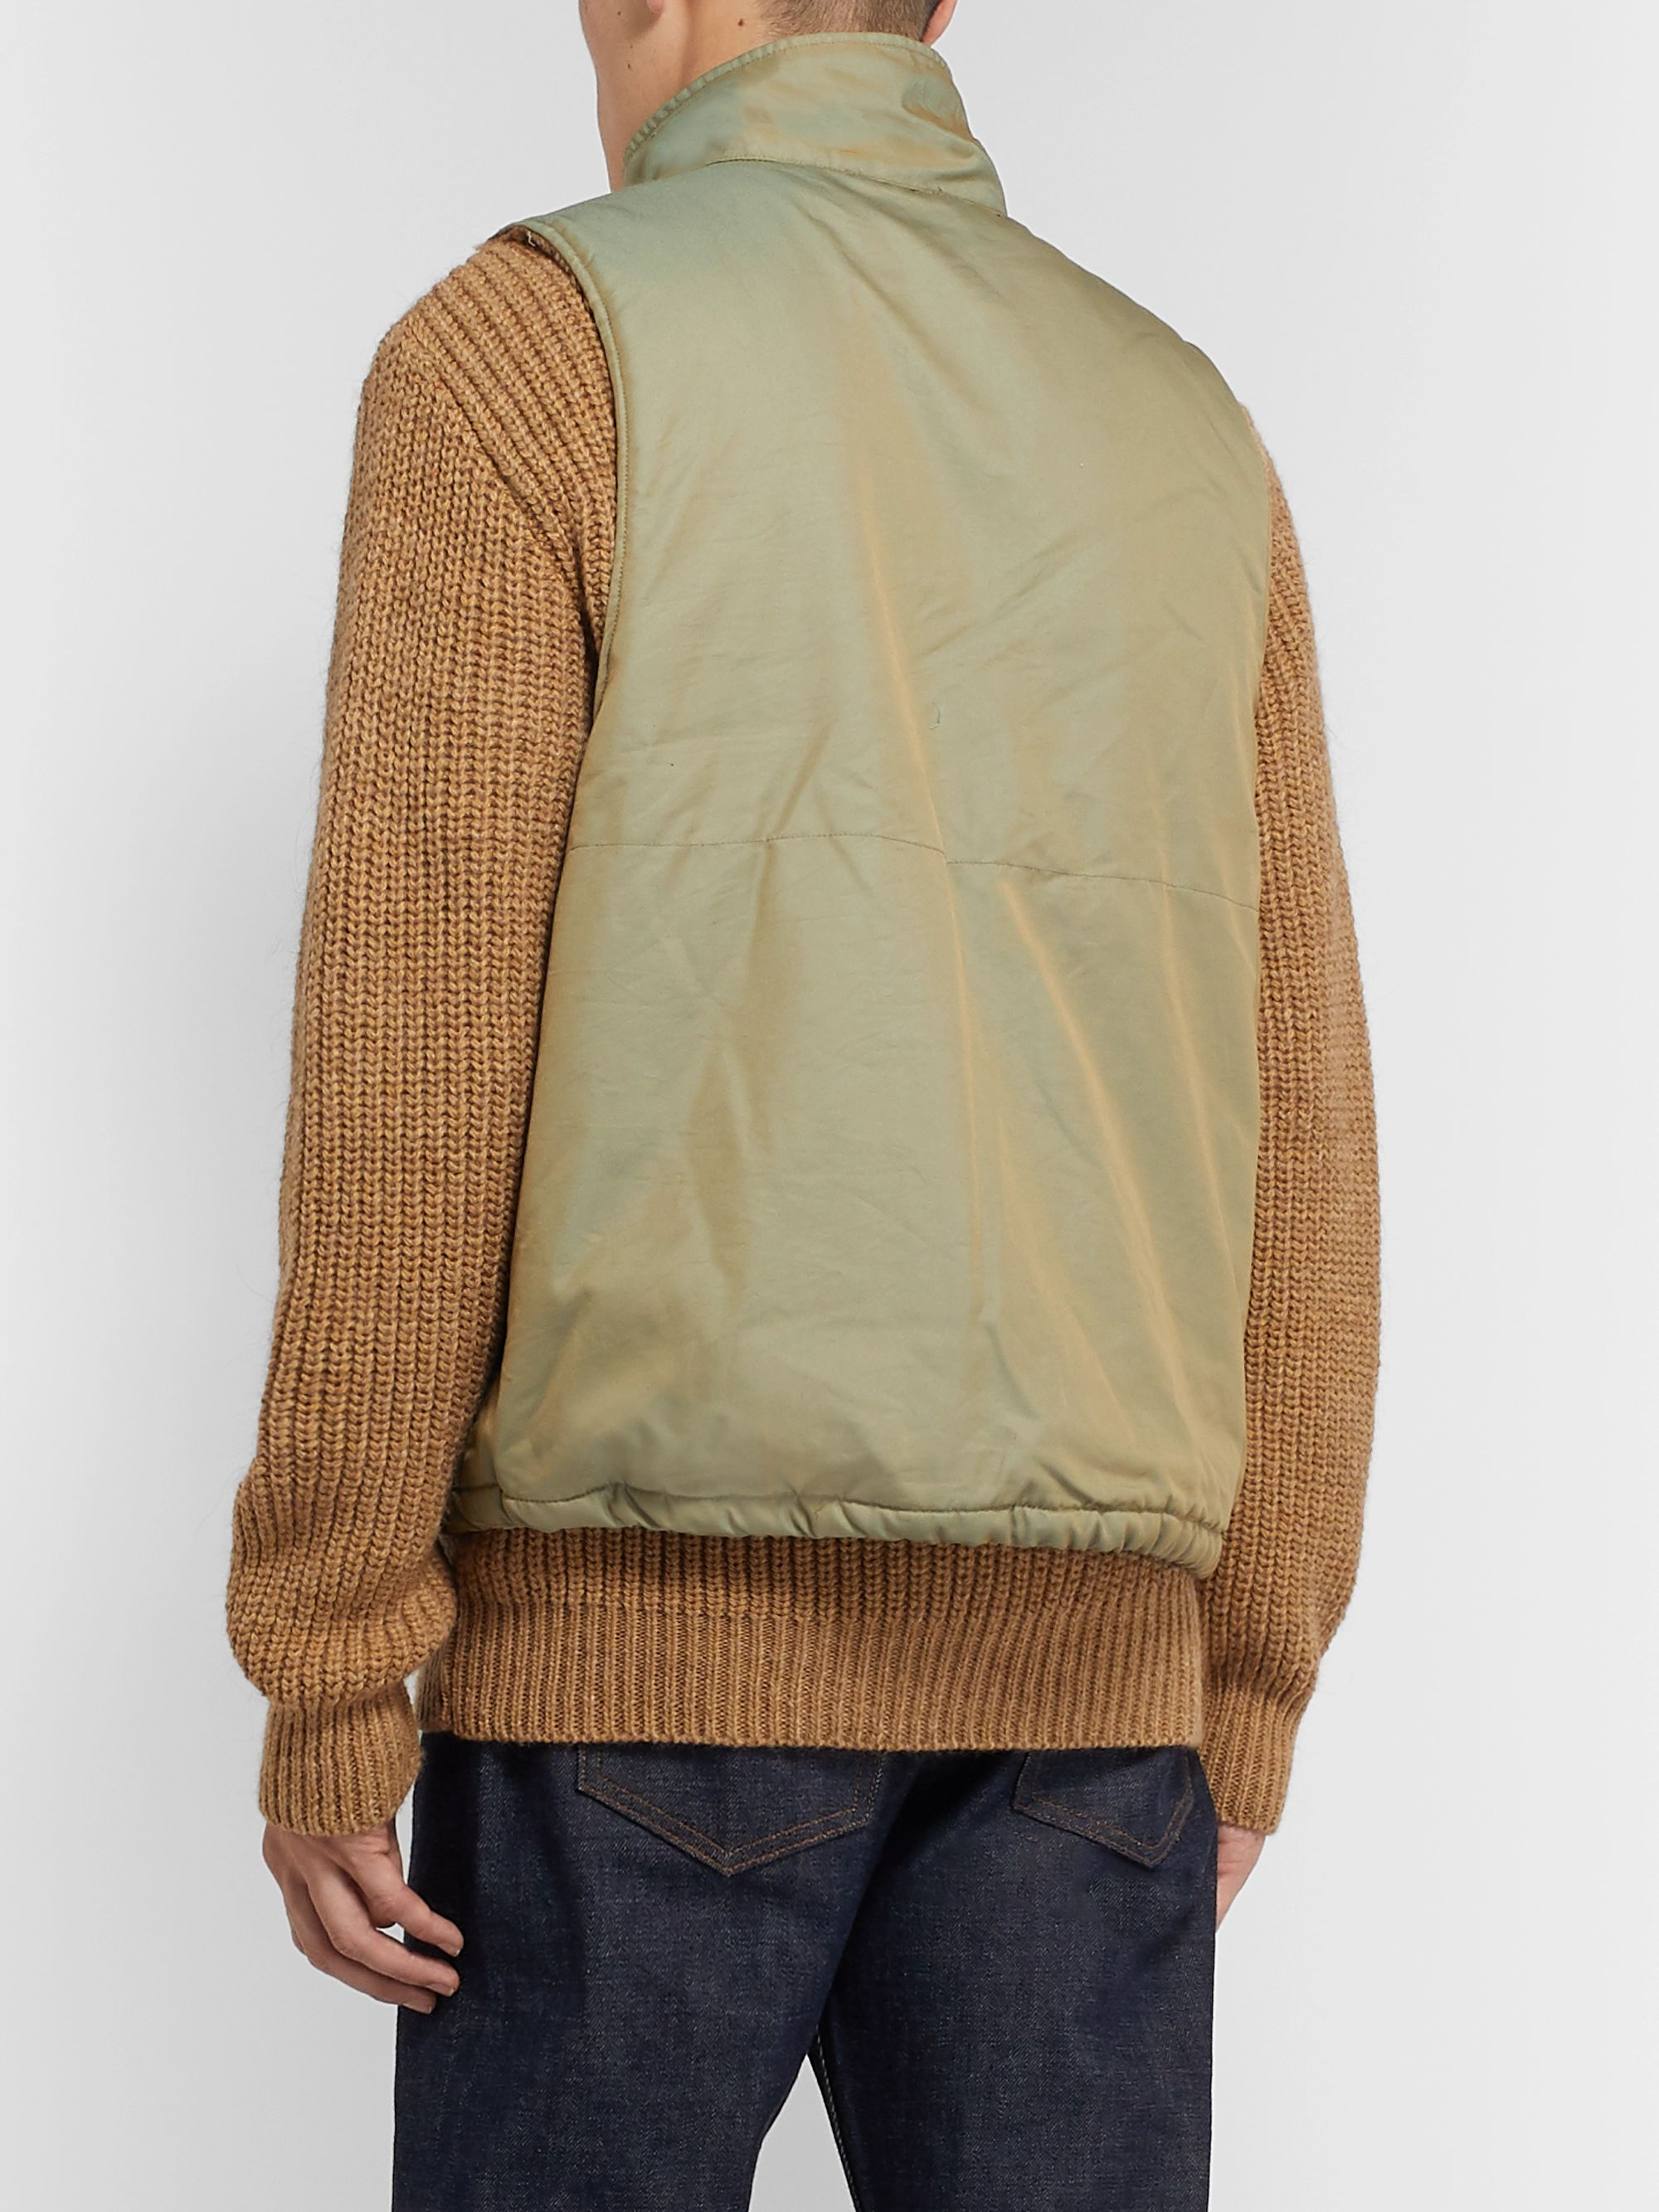 Engineered Garments Fleece-Lined Iridescent Twill Gilet